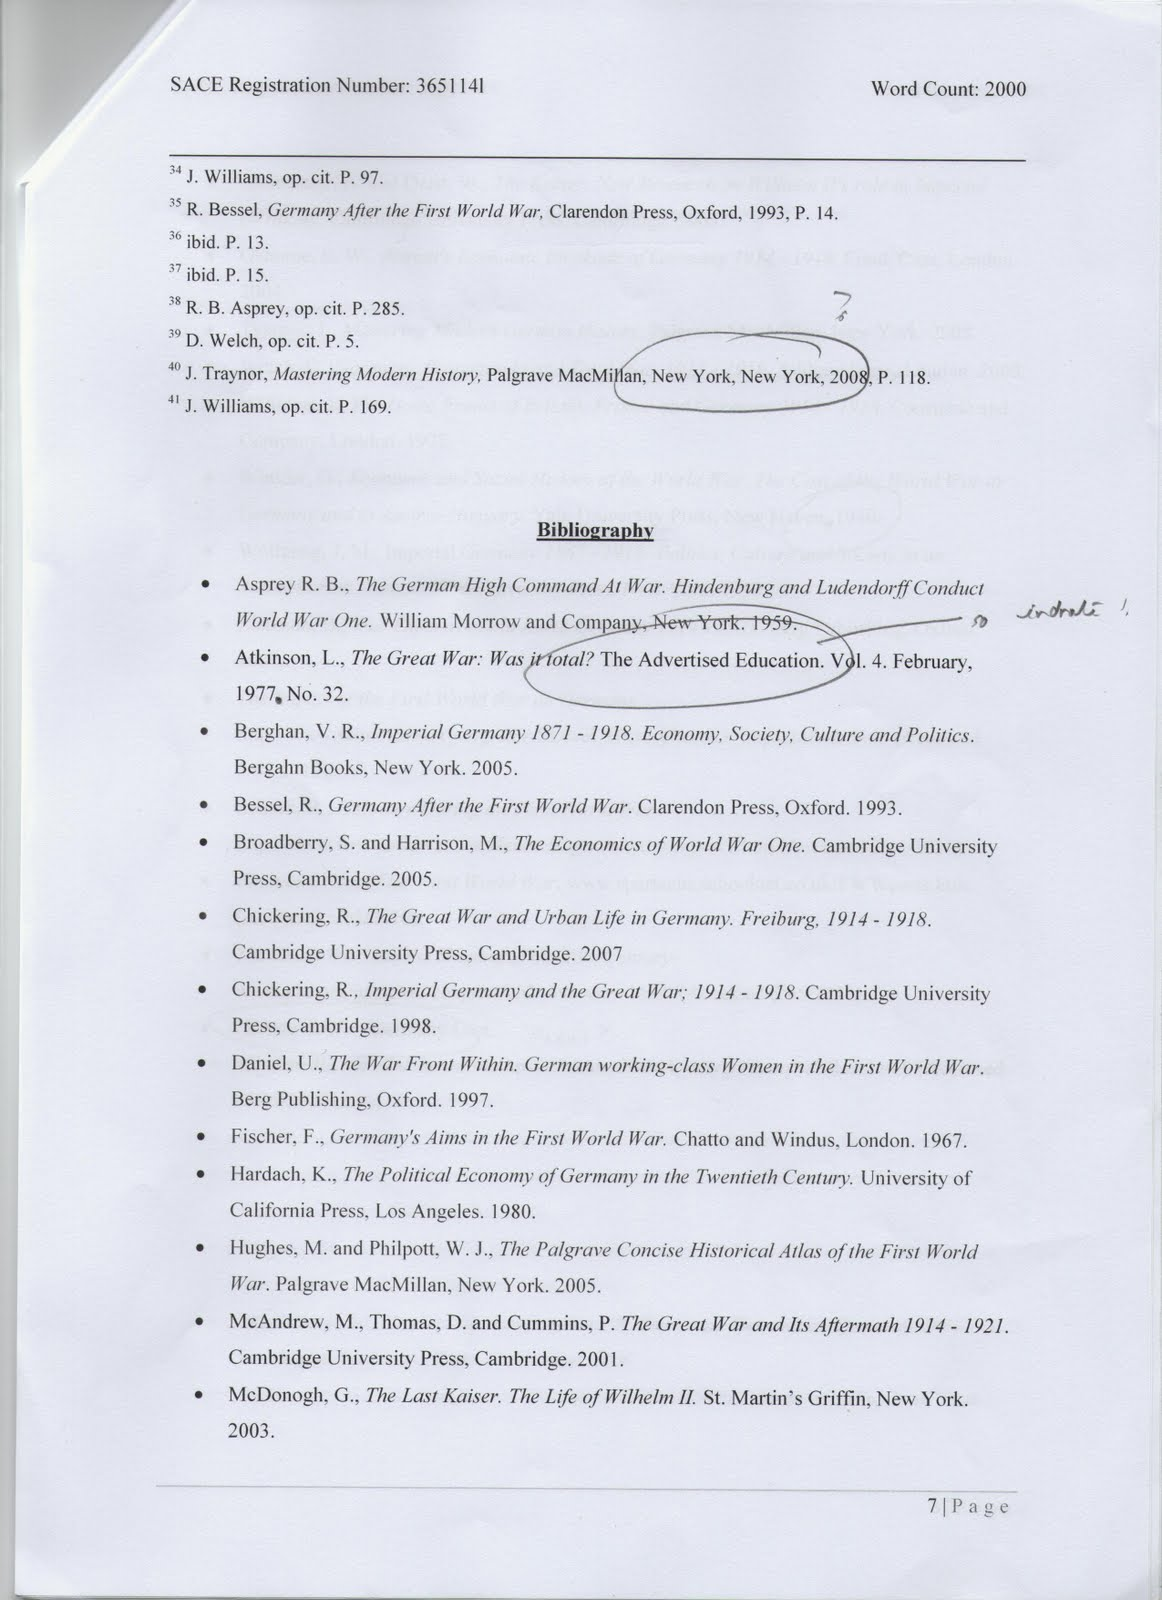 009 Endnotes2bbibliography1 Essay Example Dreaded Uchicago Prompts 2015 College Examples Supplement Tips Full